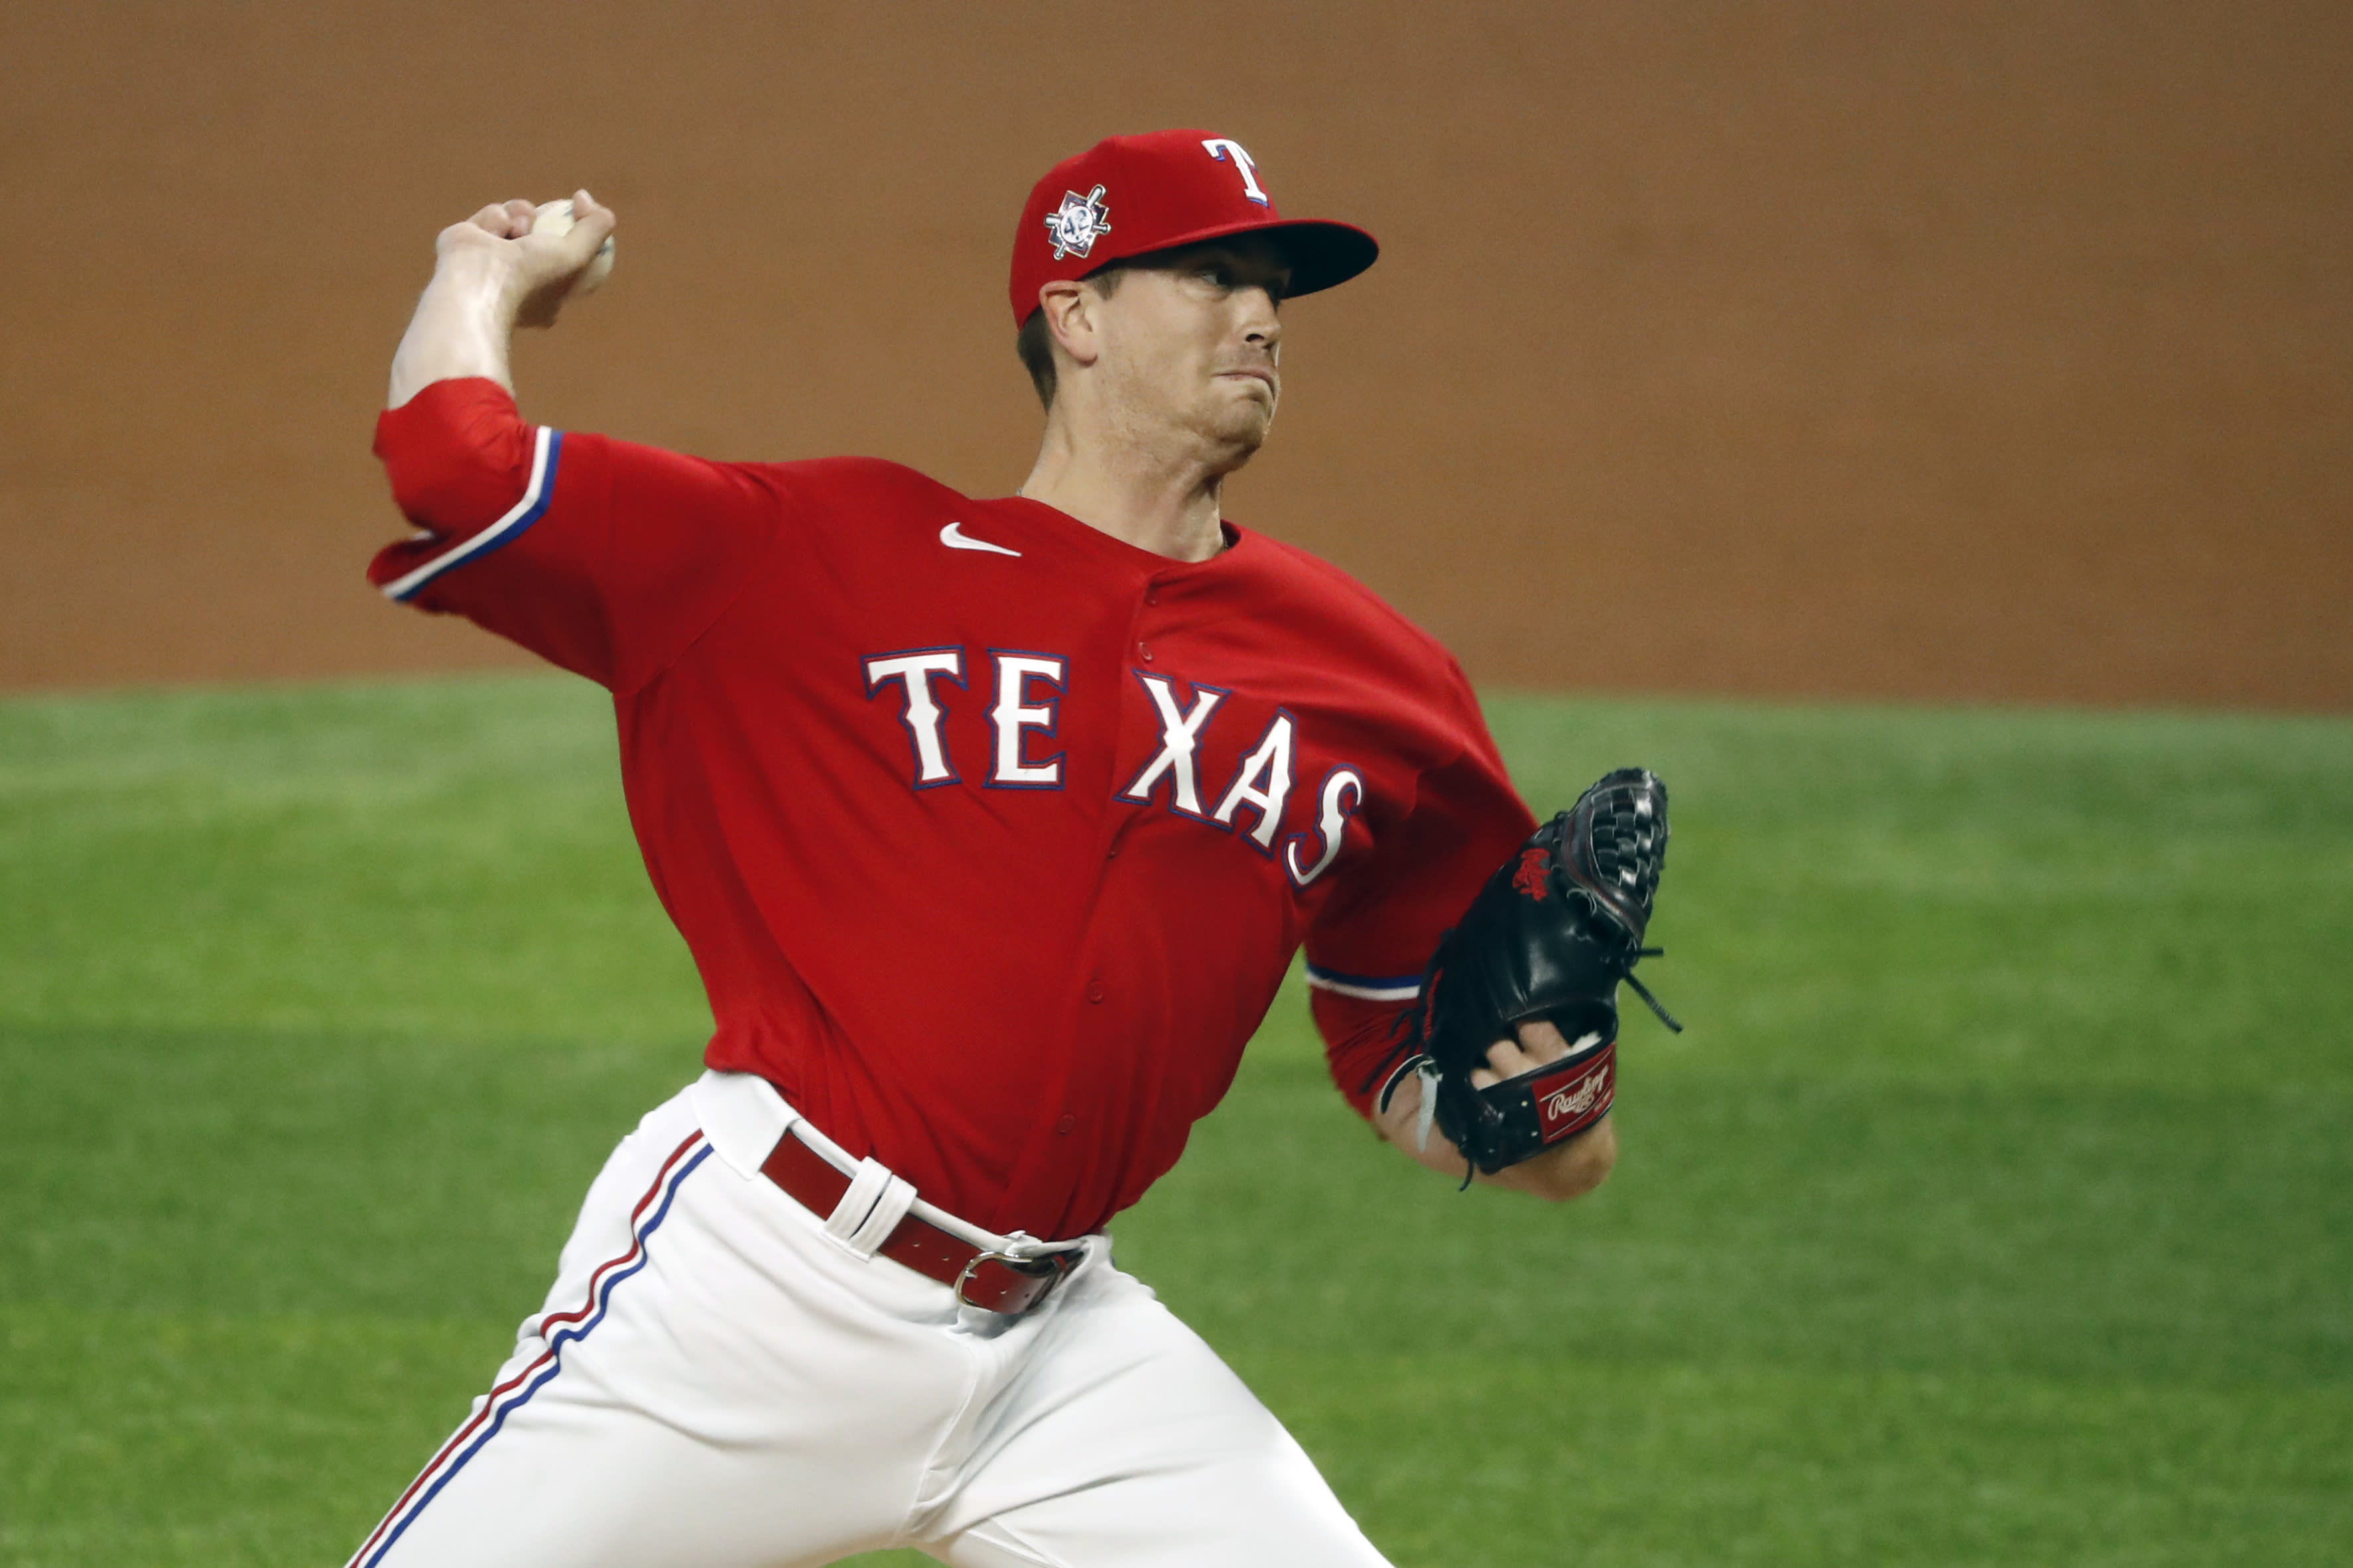 Texas Rangers starting pitcher Kyle Gibson throws during the first inning of a baseball game against the Los Angeles Dodgers in Arlington, Texas, Sunday, Aug. 30, 2020. (AP Photo/Roger Steinman)